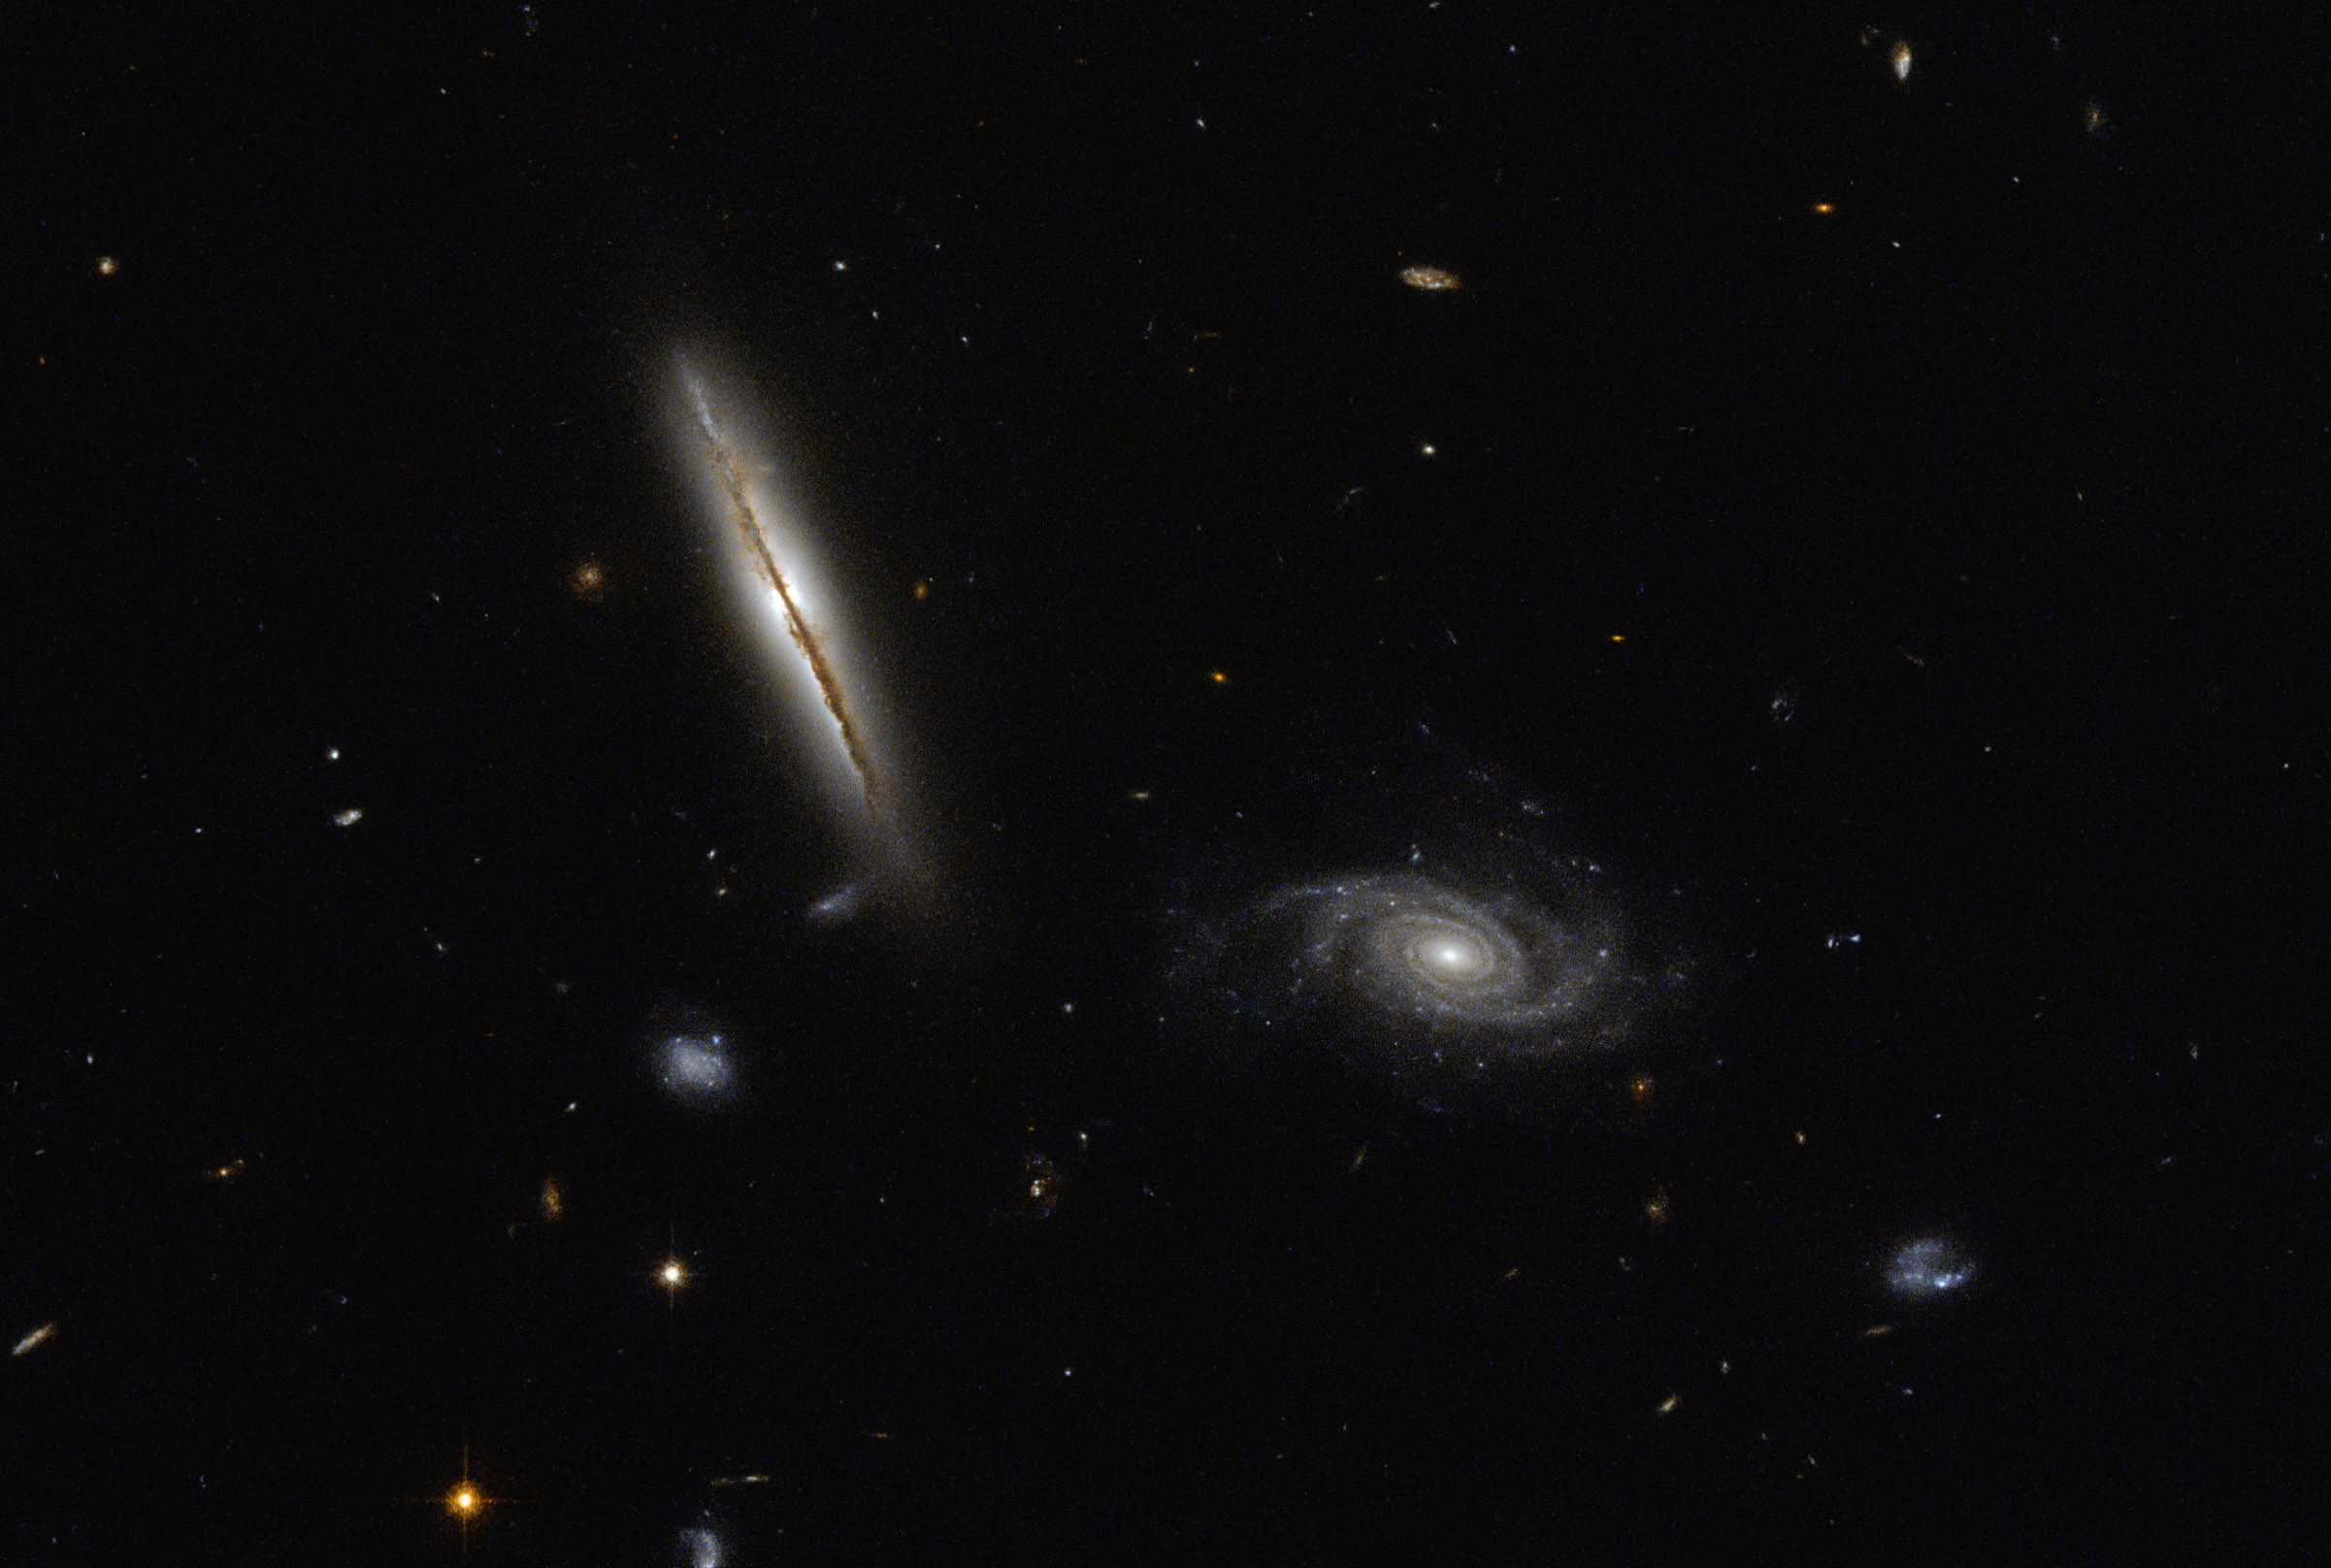 Hubble Space Telescope image of spiral galaxies LO95 0313-192 (left) and [